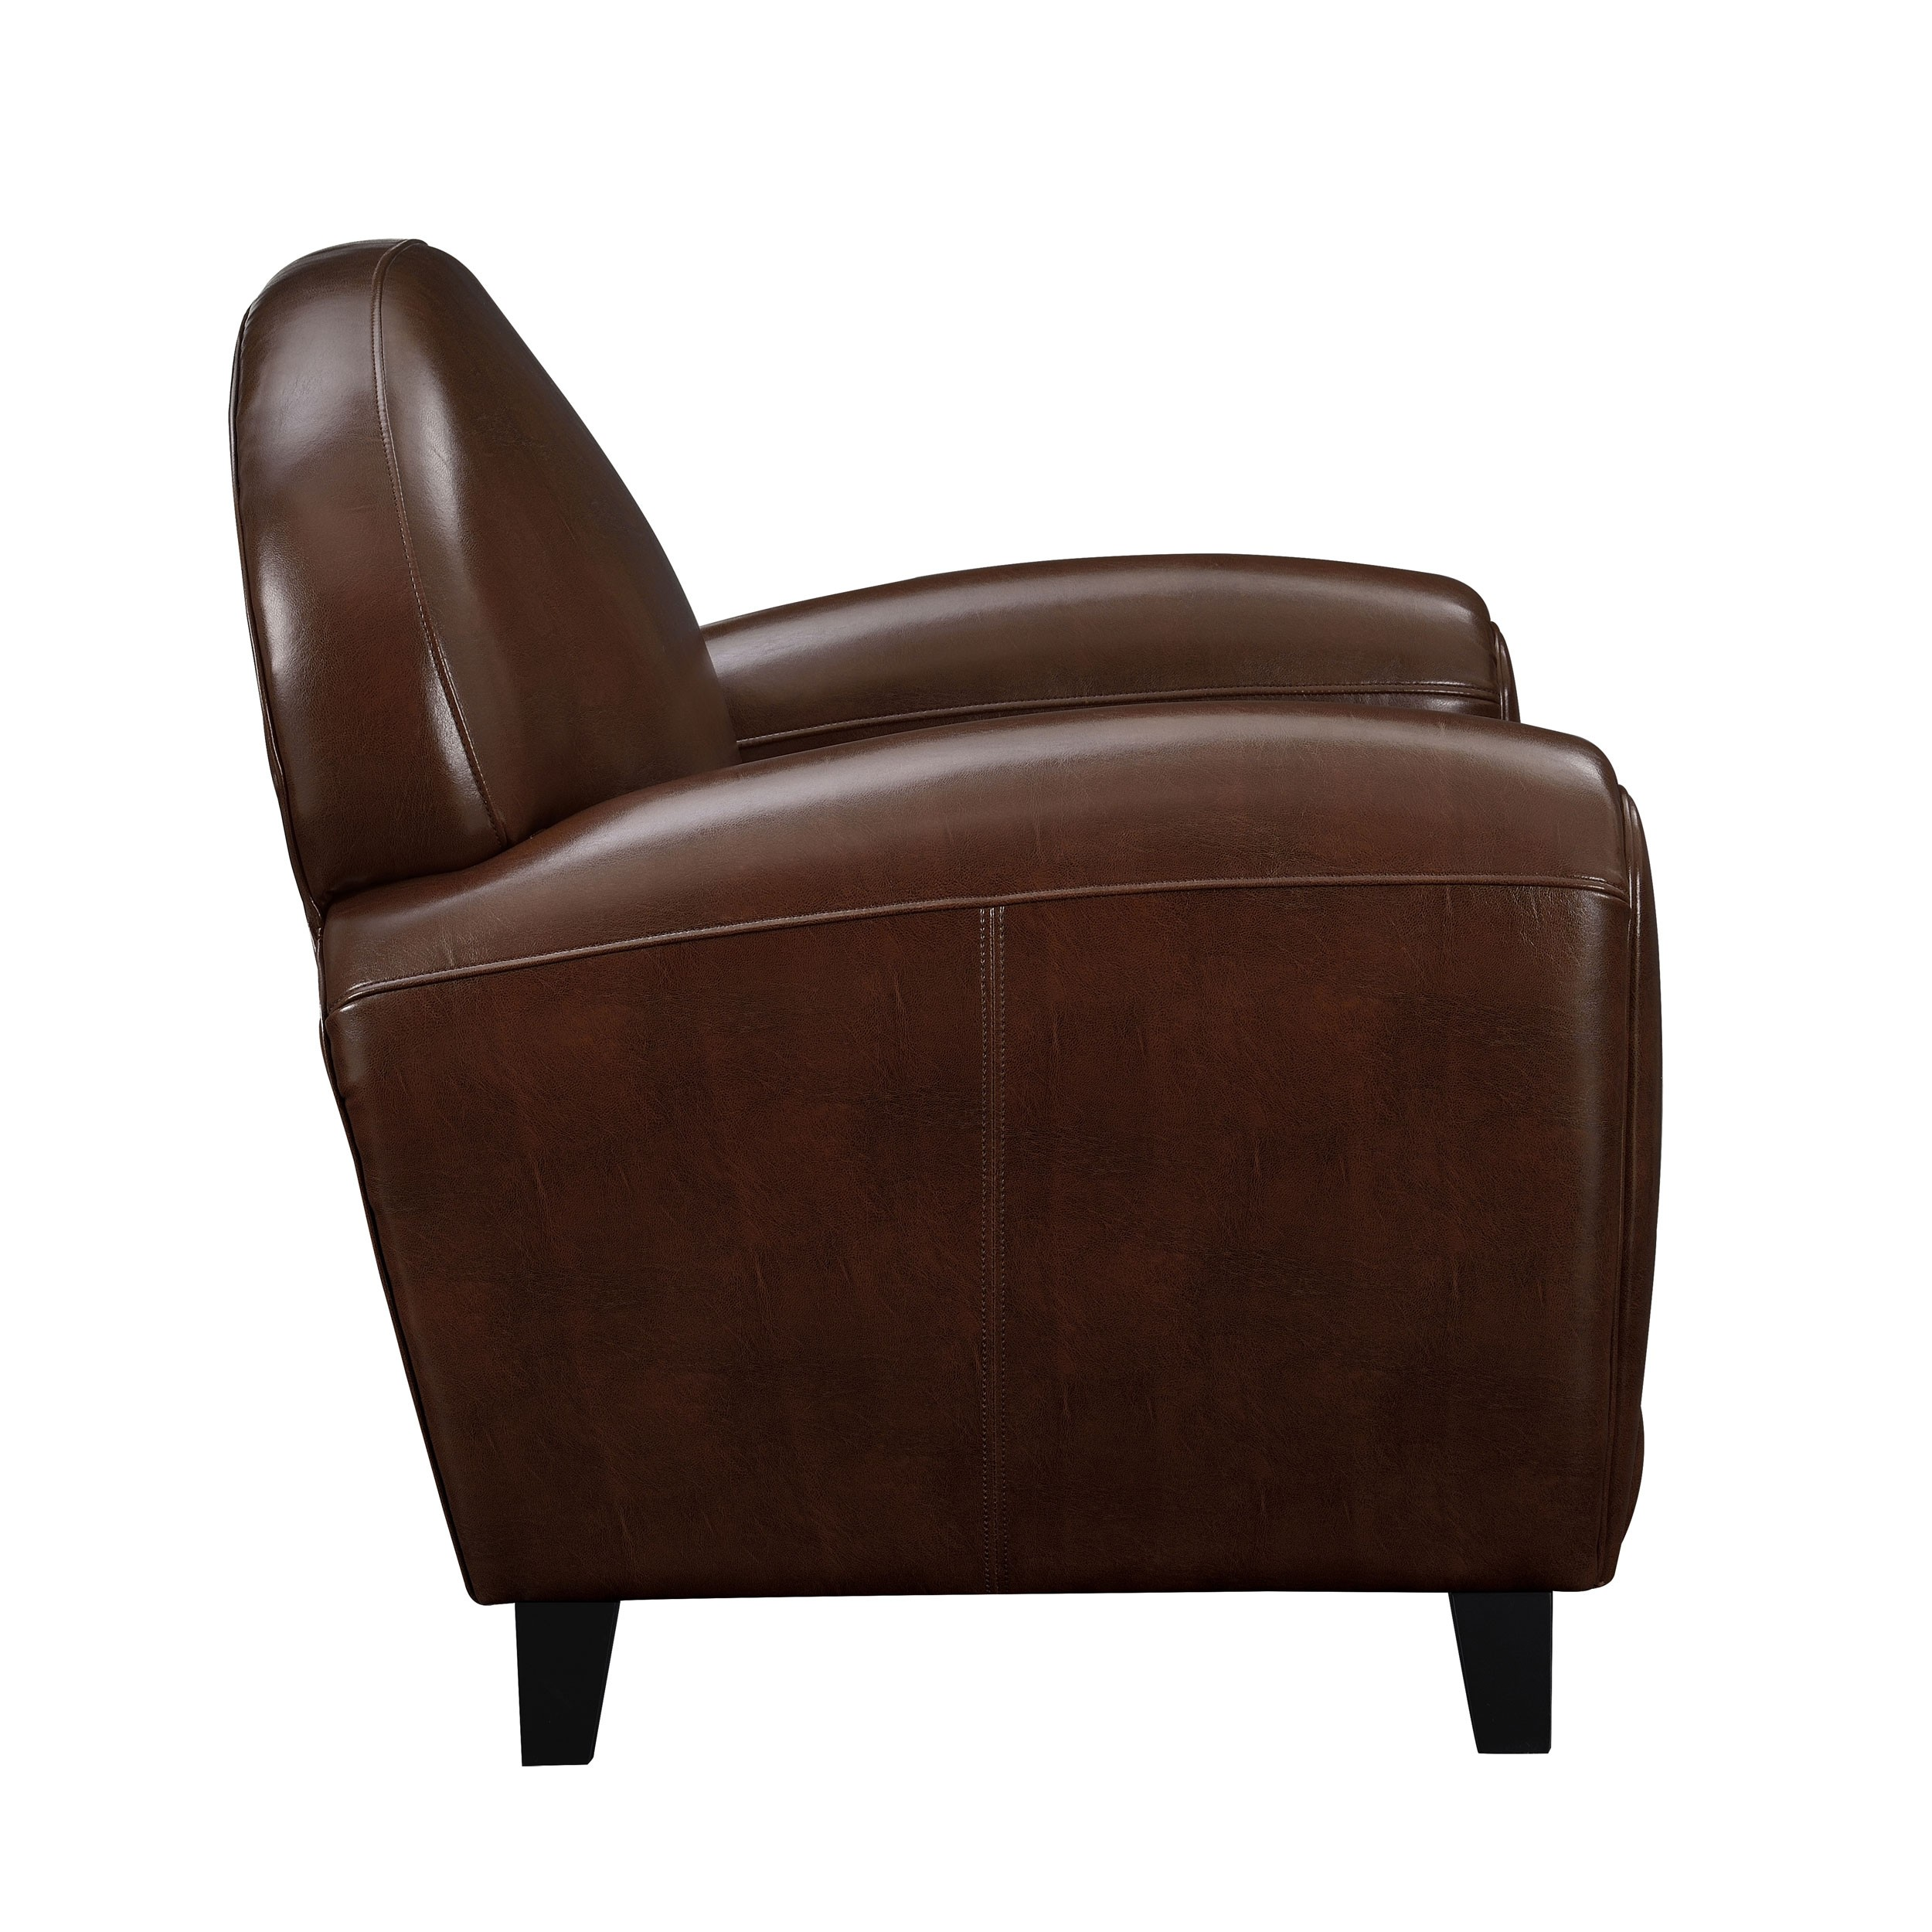 fauteuil club cuir marron achetez nos fauteuils club cuir marron rdv d co. Black Bedroom Furniture Sets. Home Design Ideas